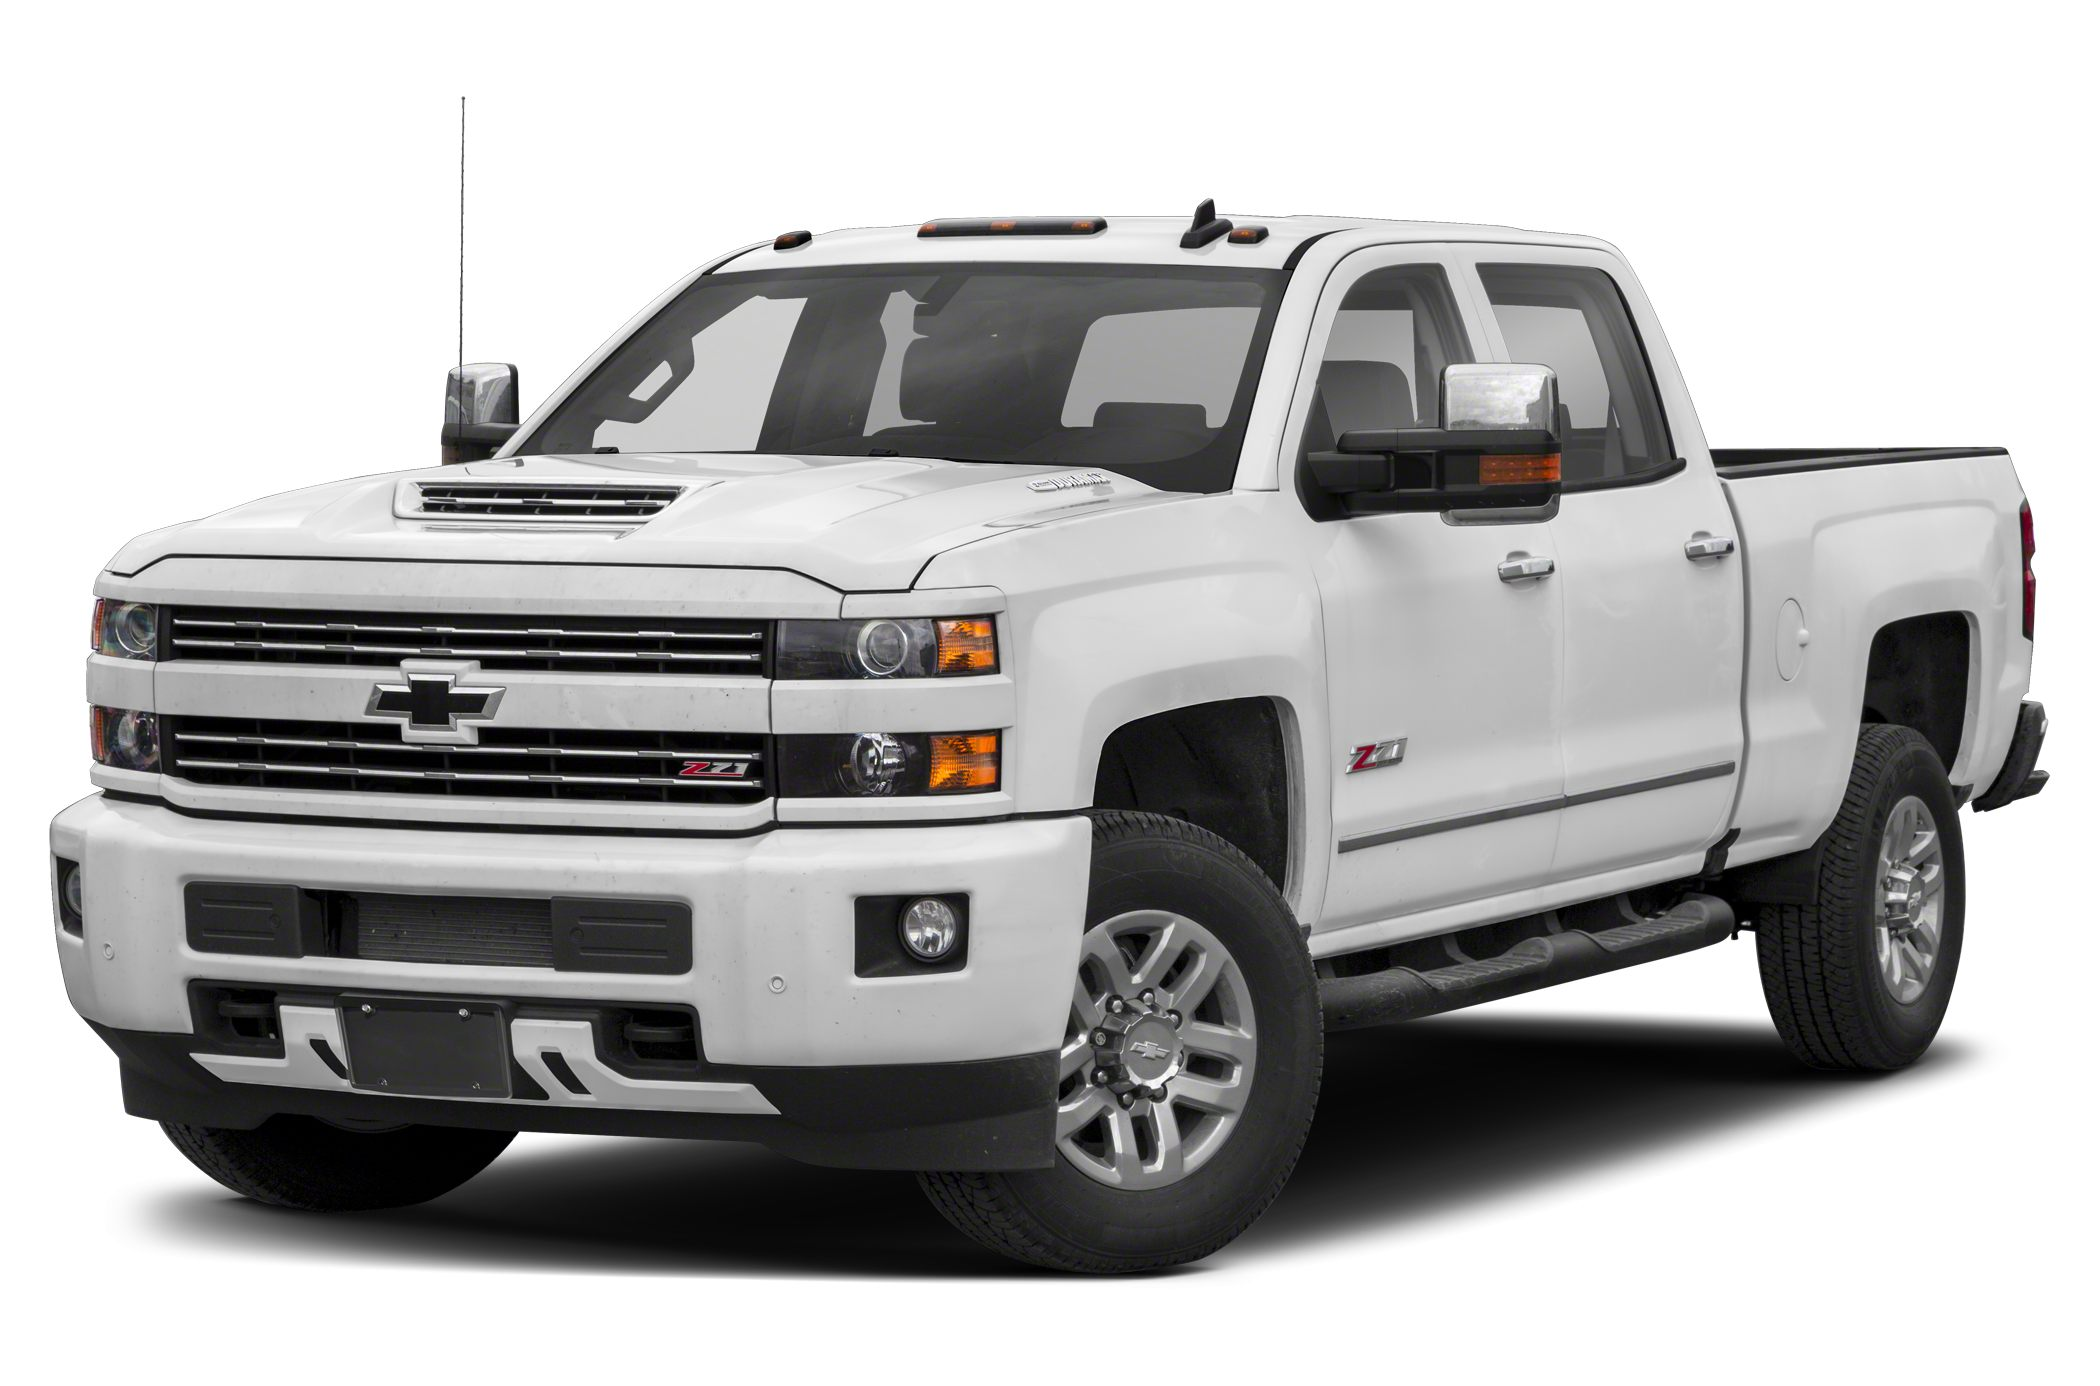 2019 Chevrolet Silverado 3500hd High Country 4x4 Crew Cab 167 7 In Wb Srw Specs And Prices